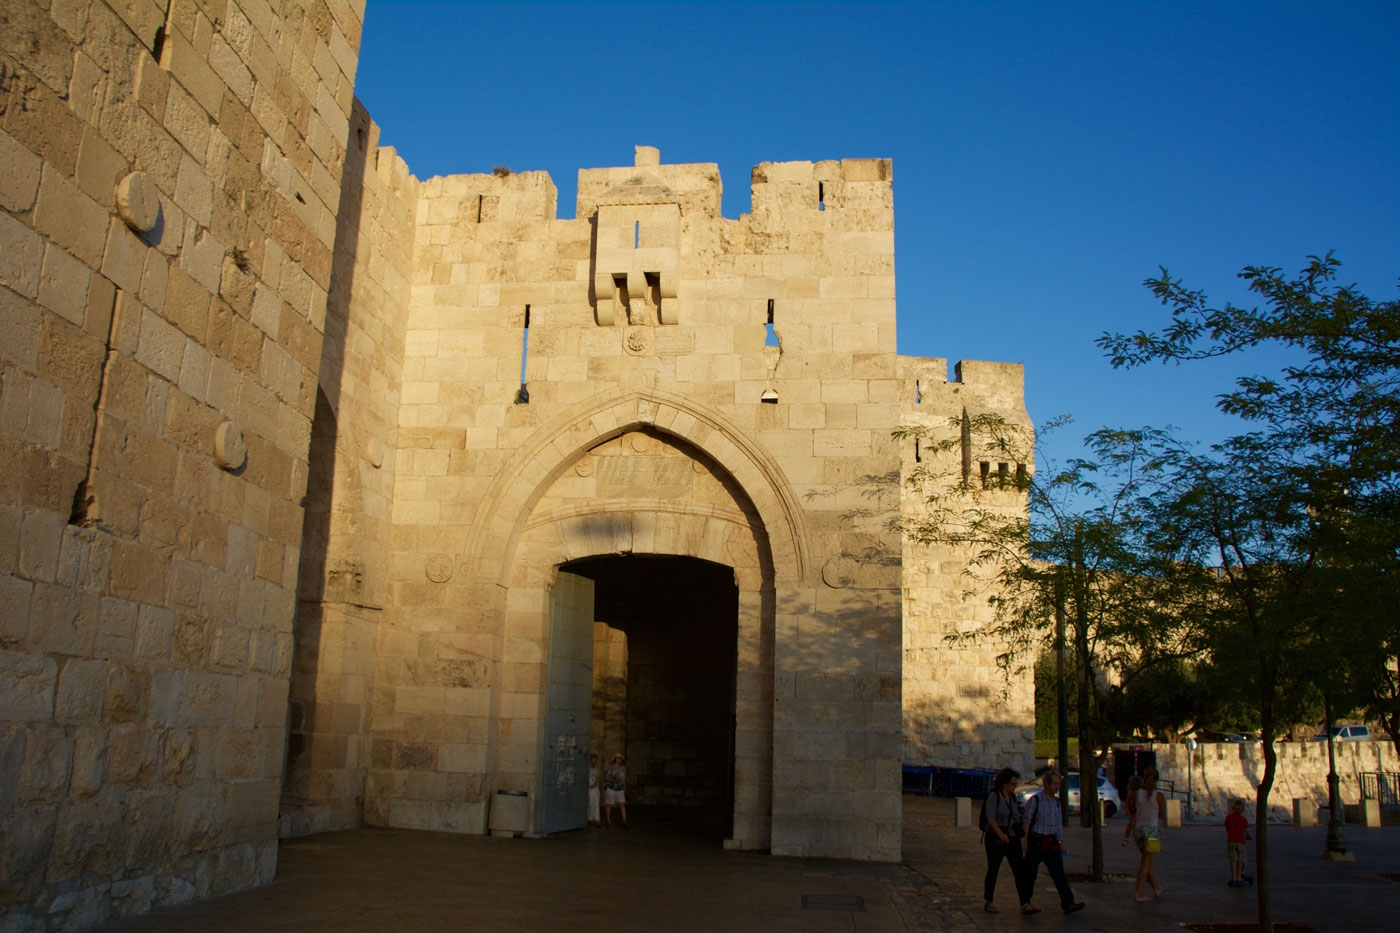 Jaffa Gate entrance to Jerusalem's Old City